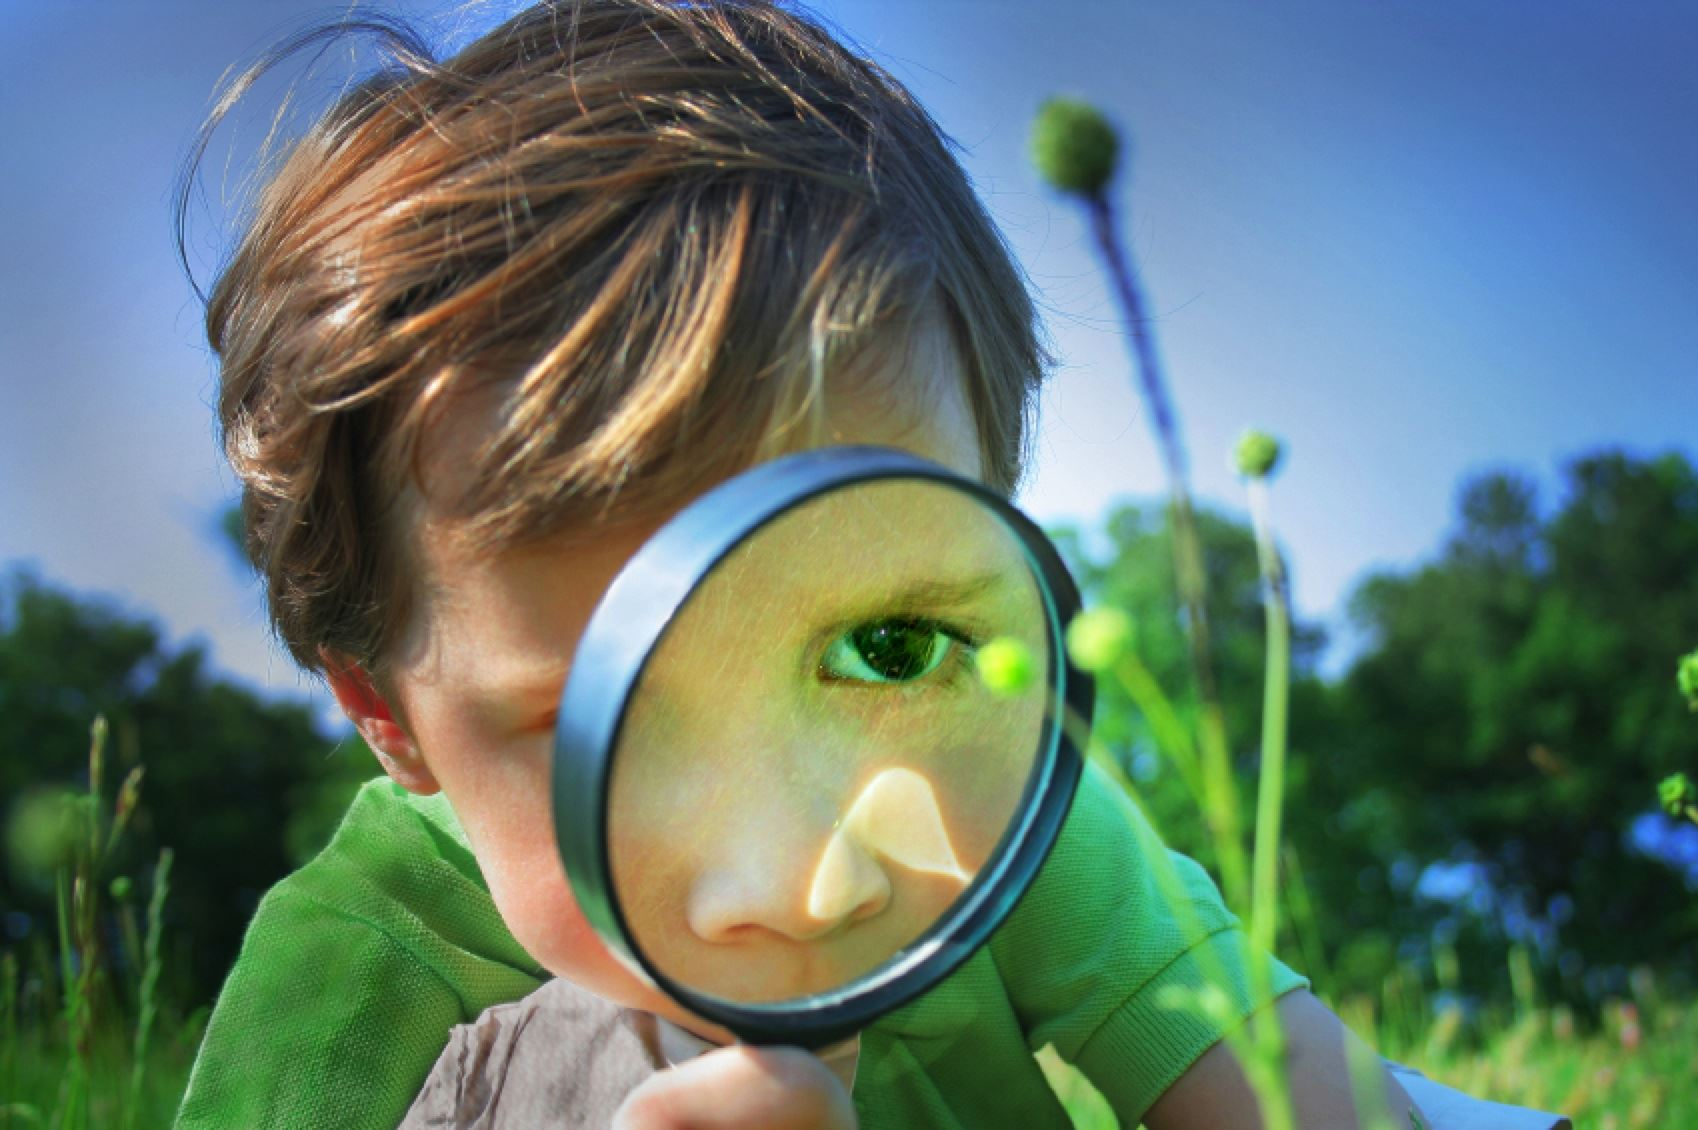 boy-with-magnifying-glass-29eyjol1